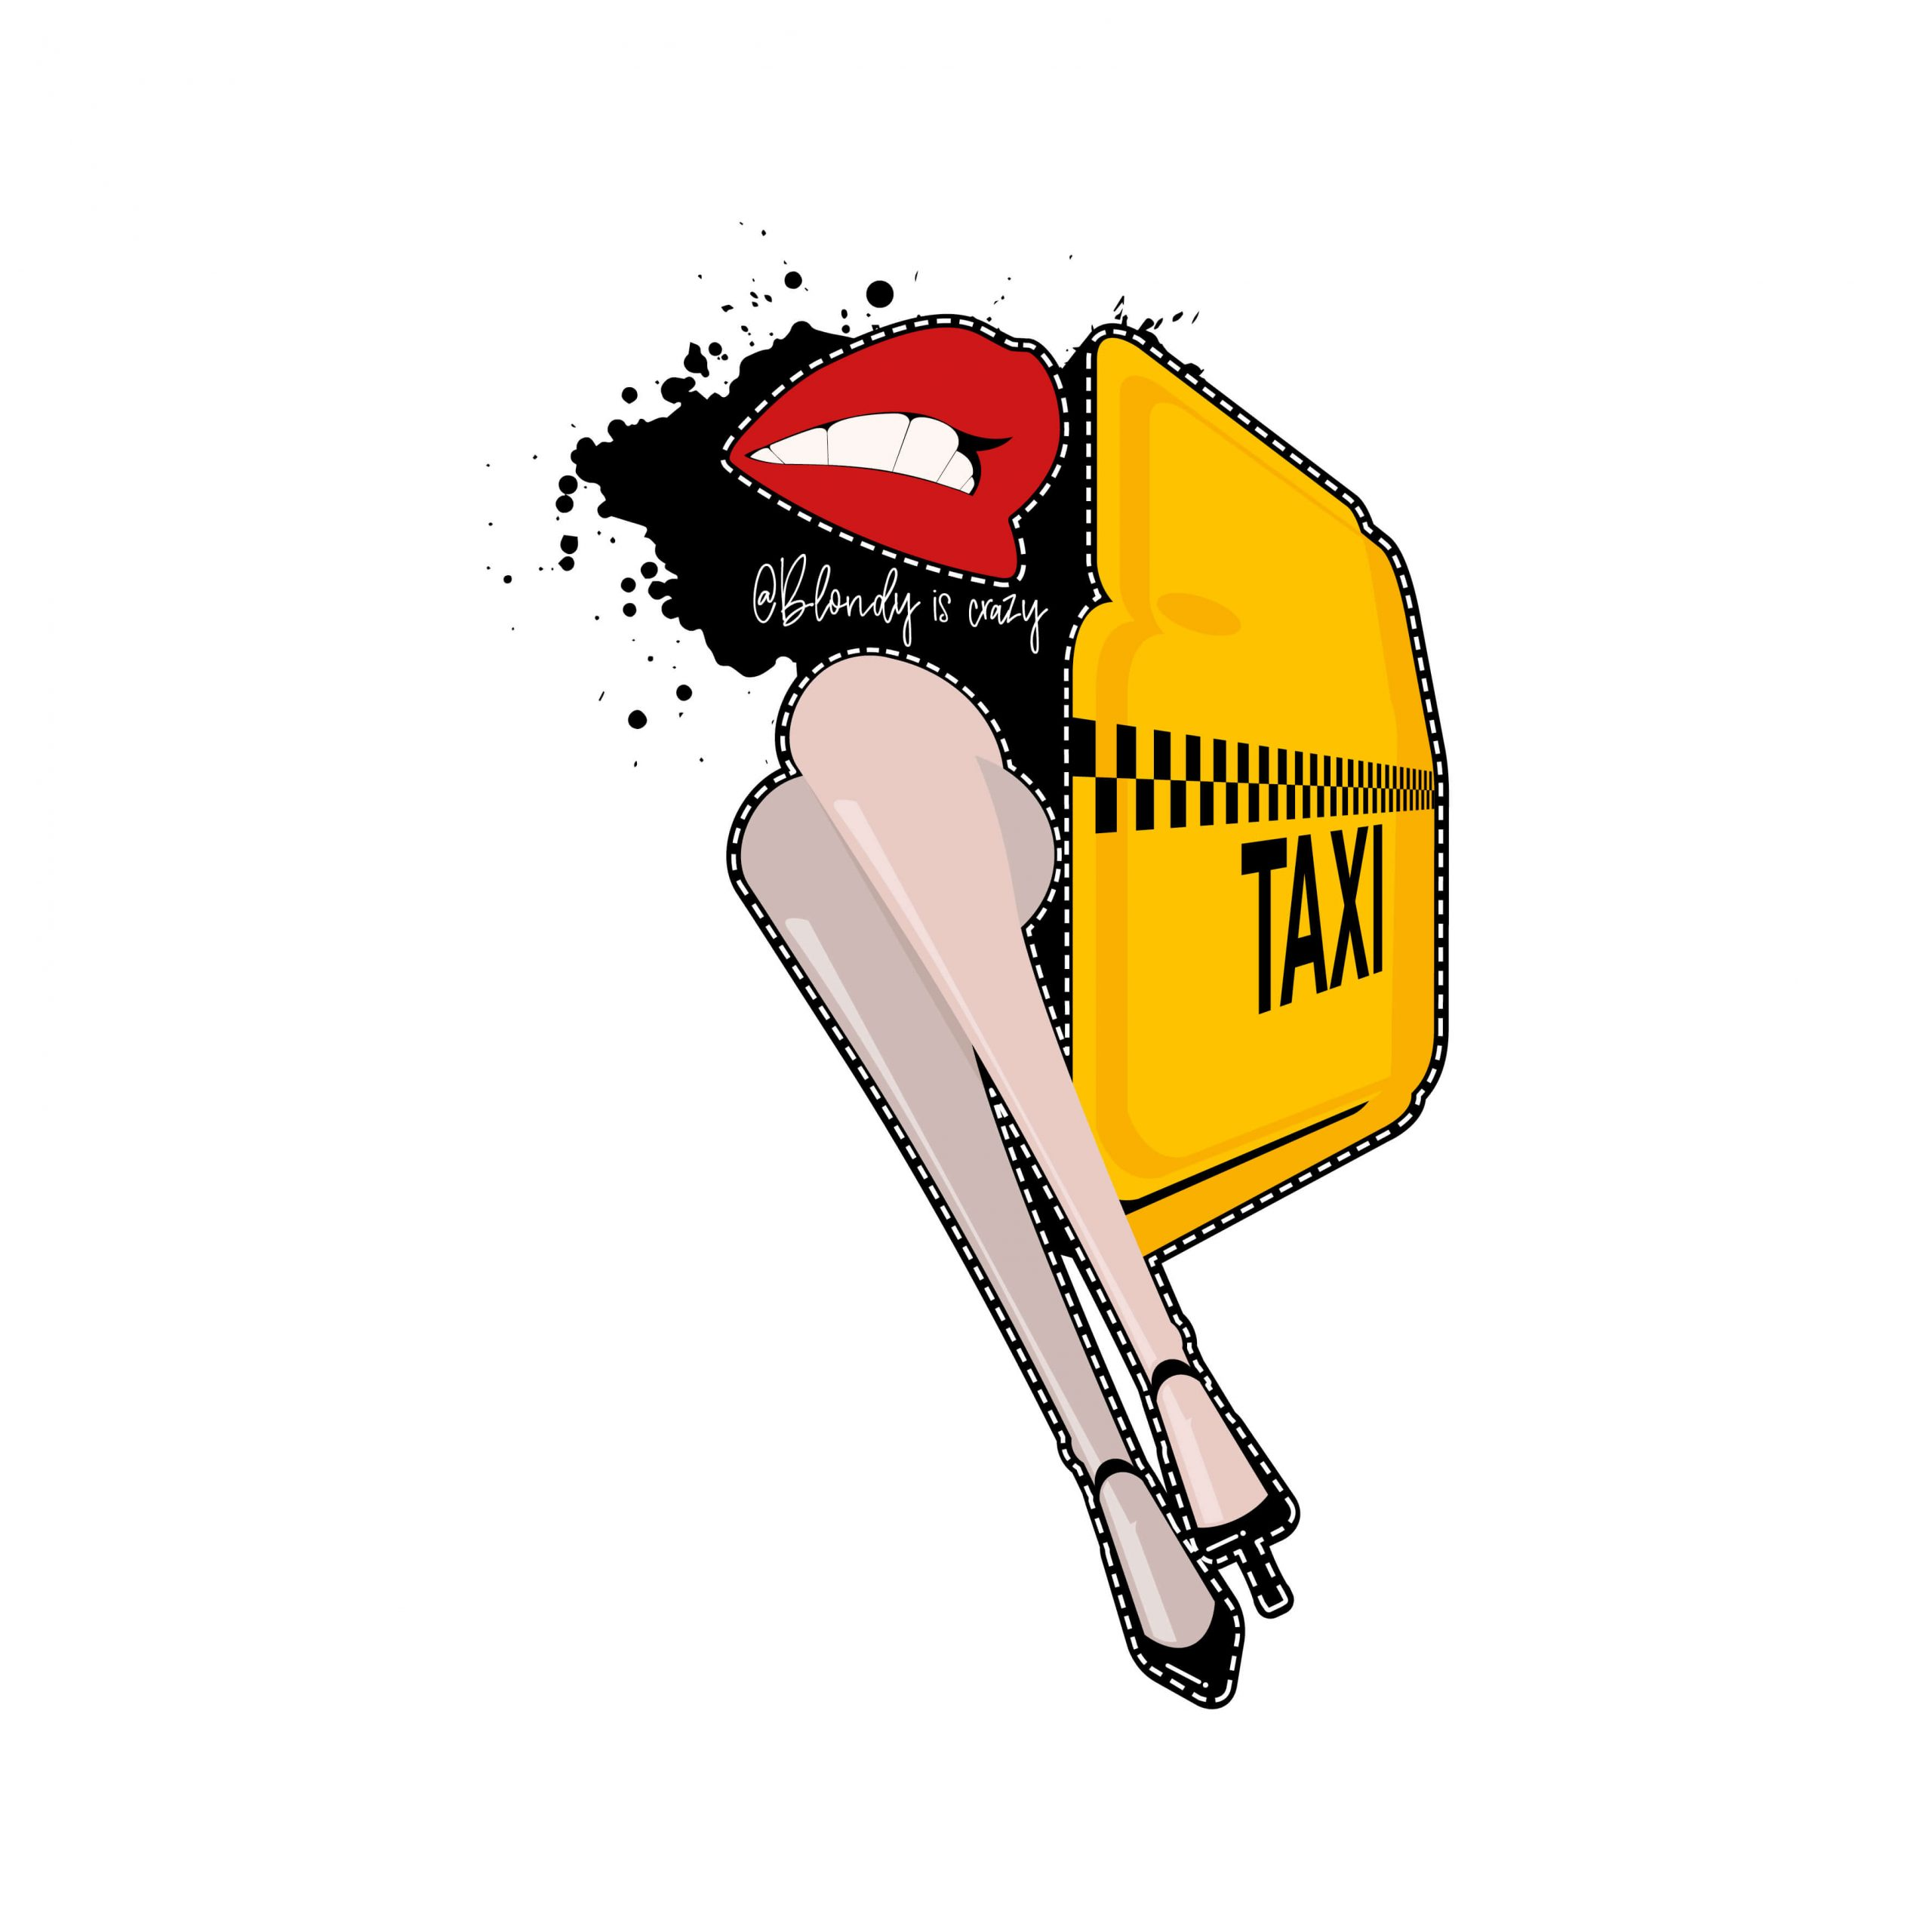 Taxi by Blondy is Crazy